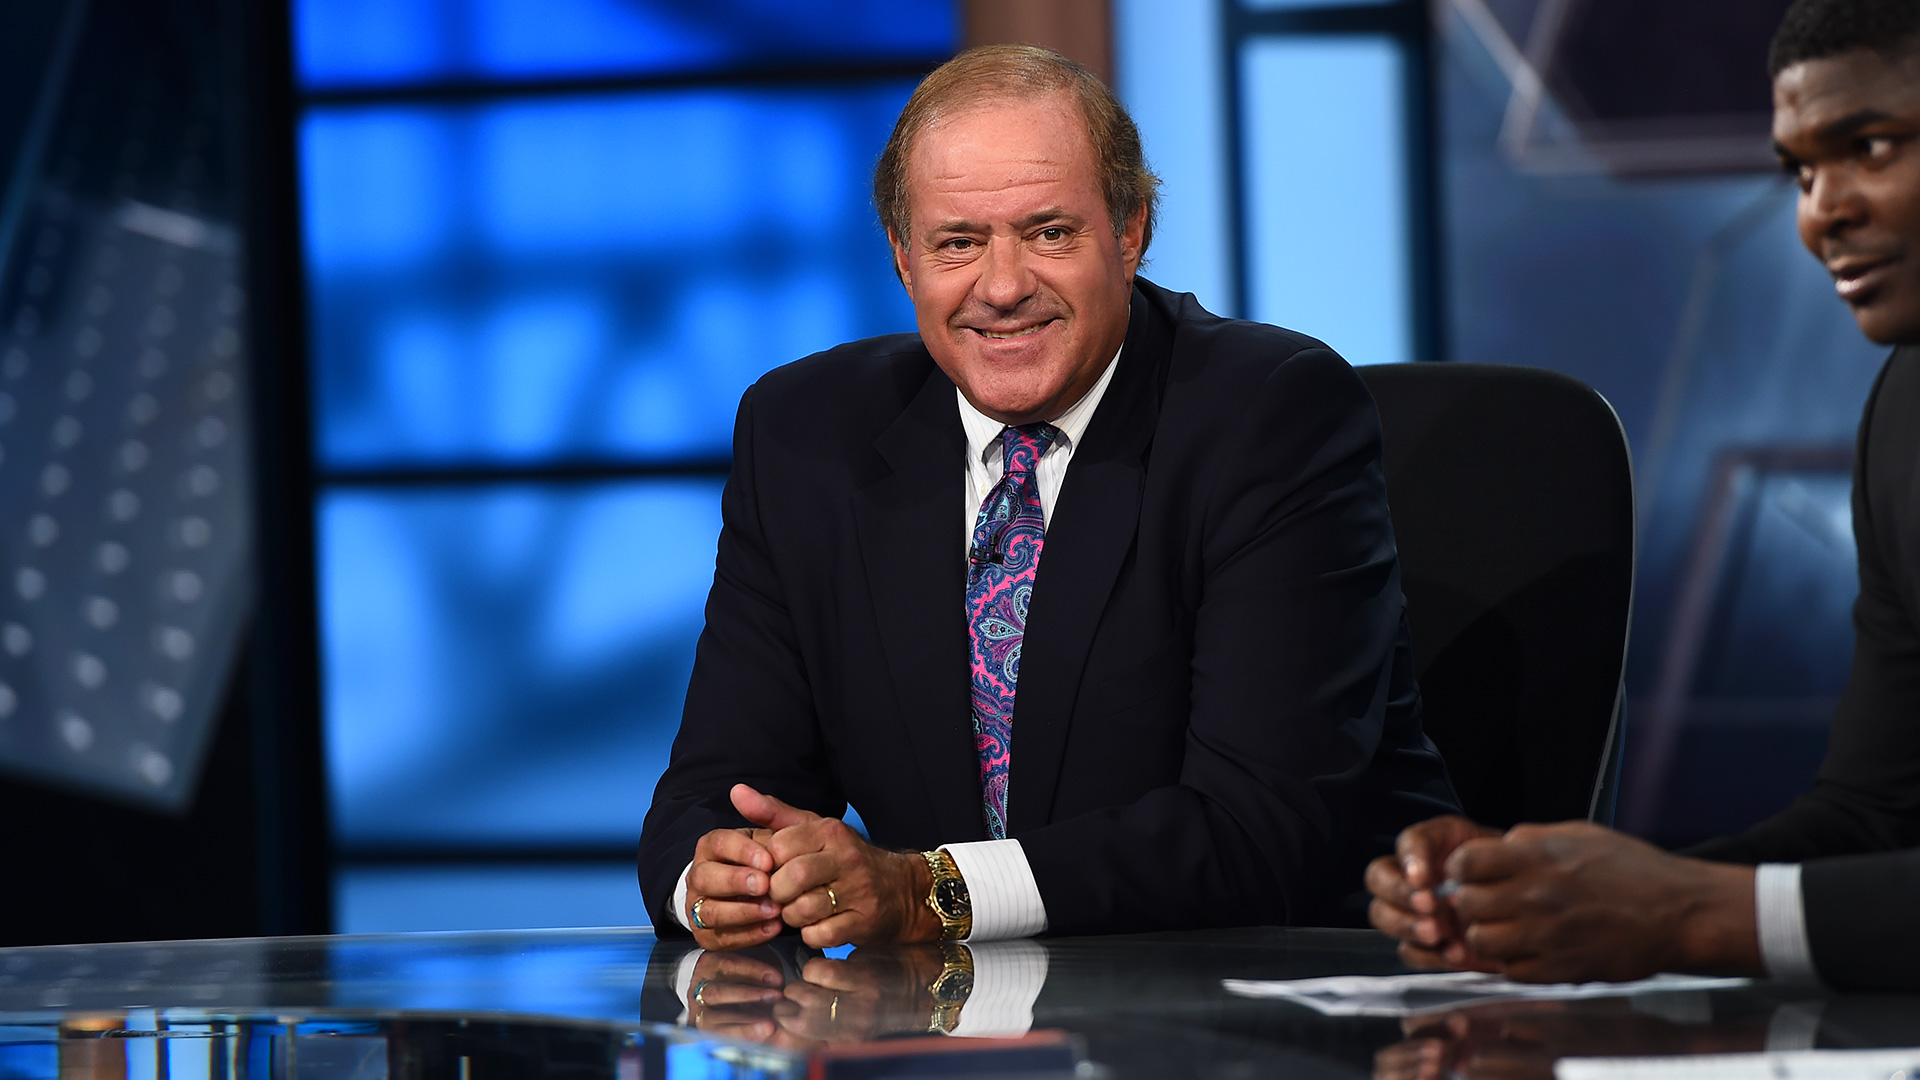 Espn S Chris Berman Opens Up On Losing Nfl Primetime And His Reduced Role Sporting News